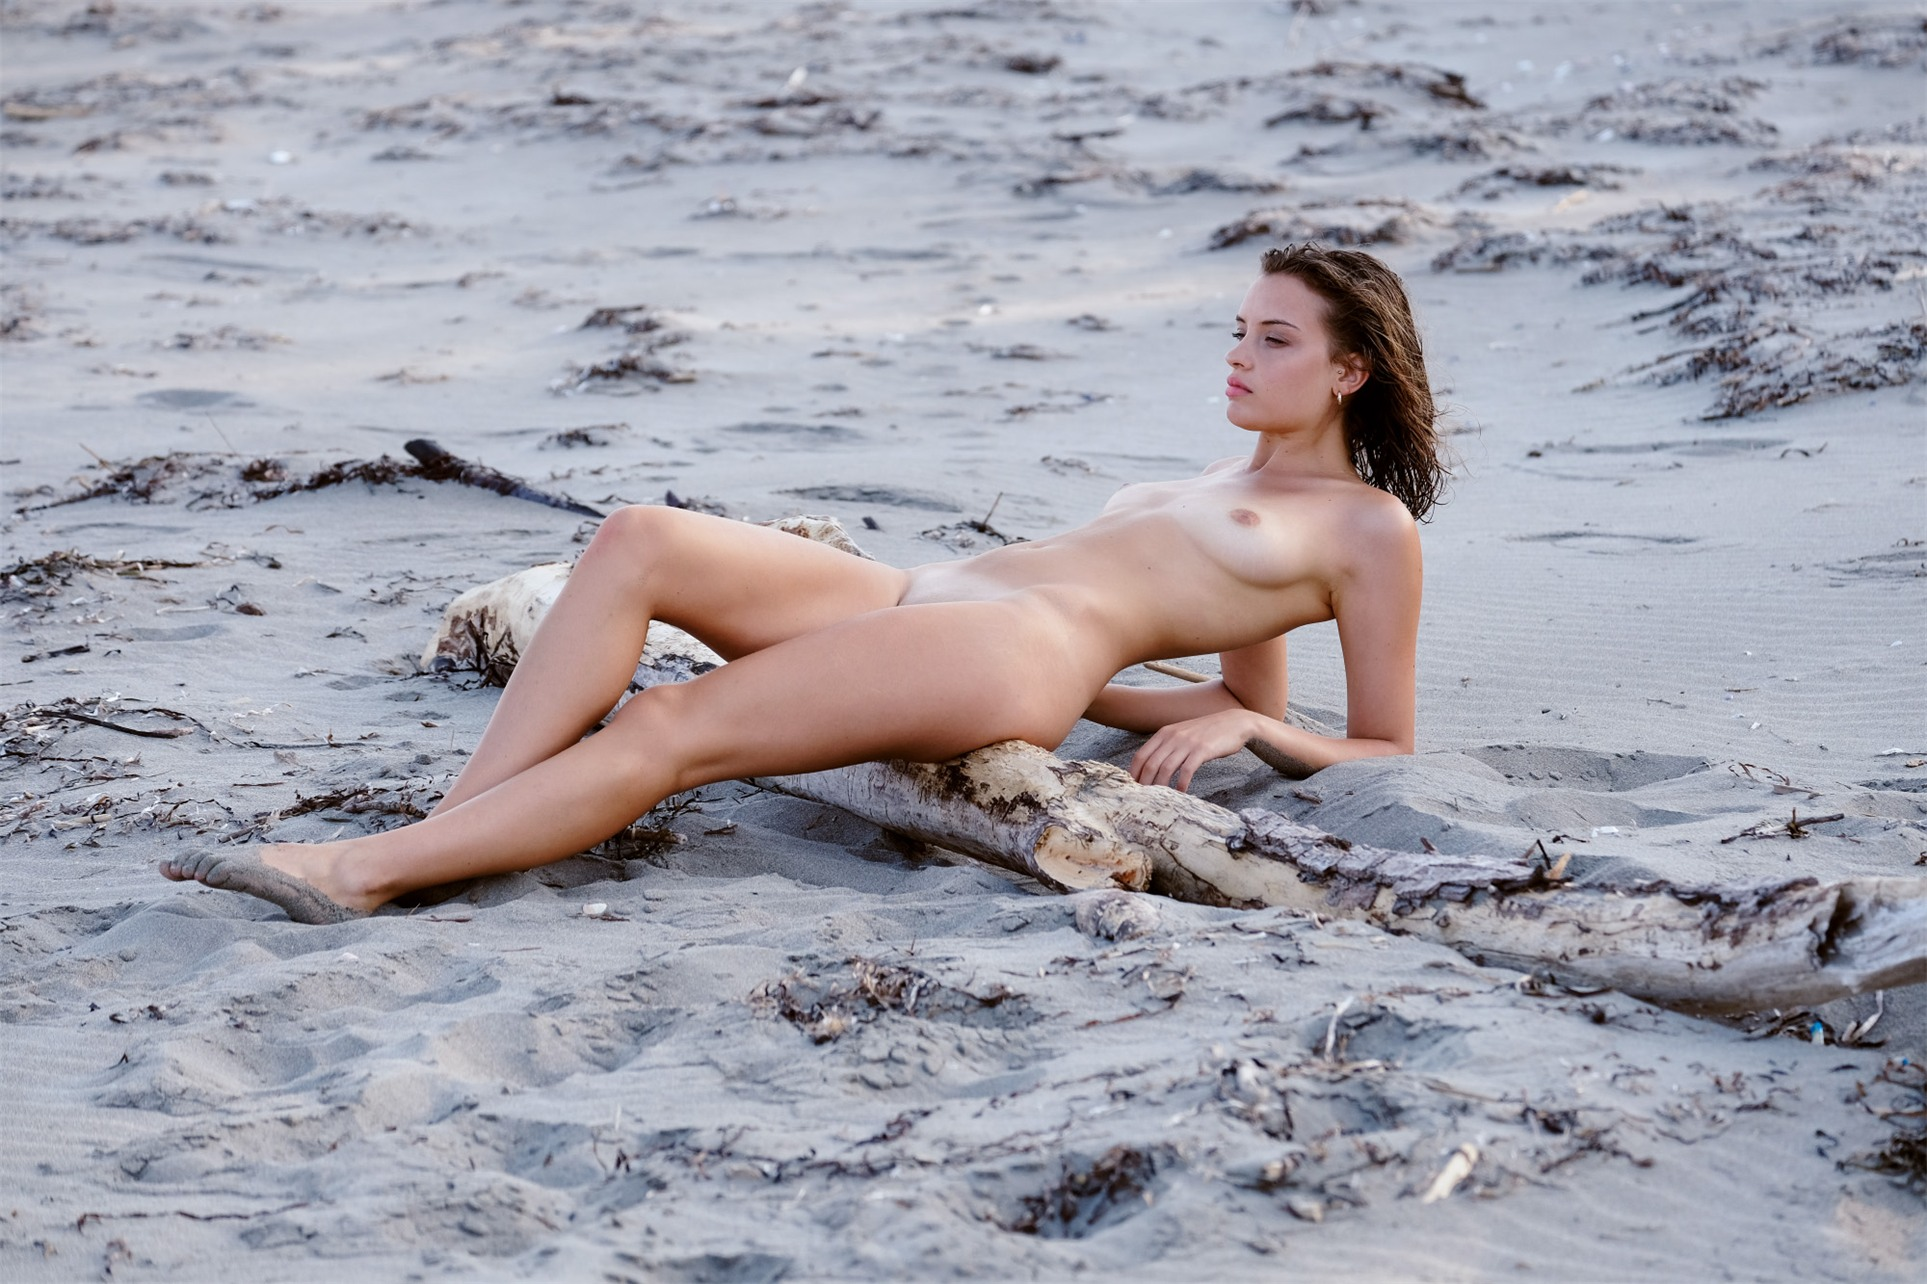 Private Beach / Gloria Fregonese by Adolfo Valente / Riven Magazine